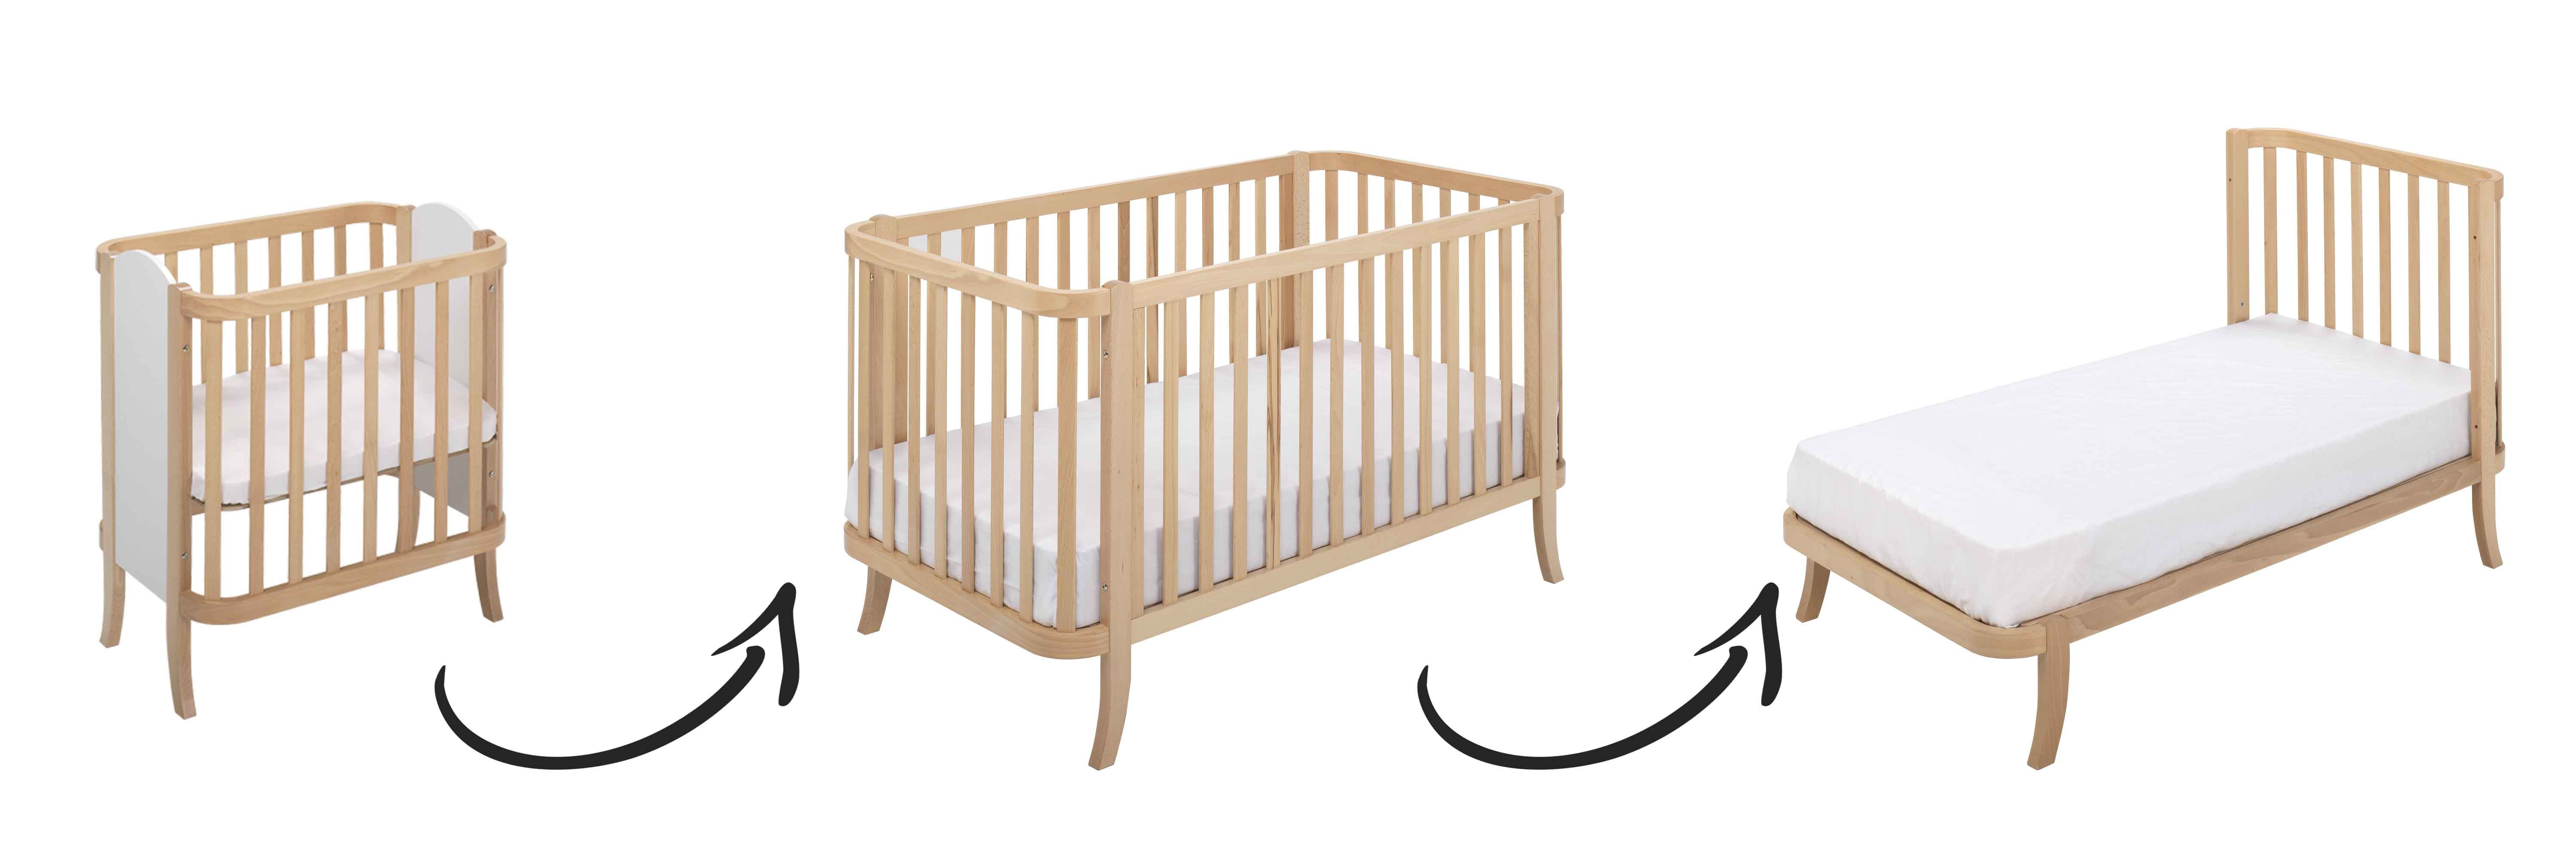 crib nursery furniture cribs letto uk tone baby cool modena designer wooden convertible bedding s mod and of beds size walnut in full modern for u two interesting ideas bed